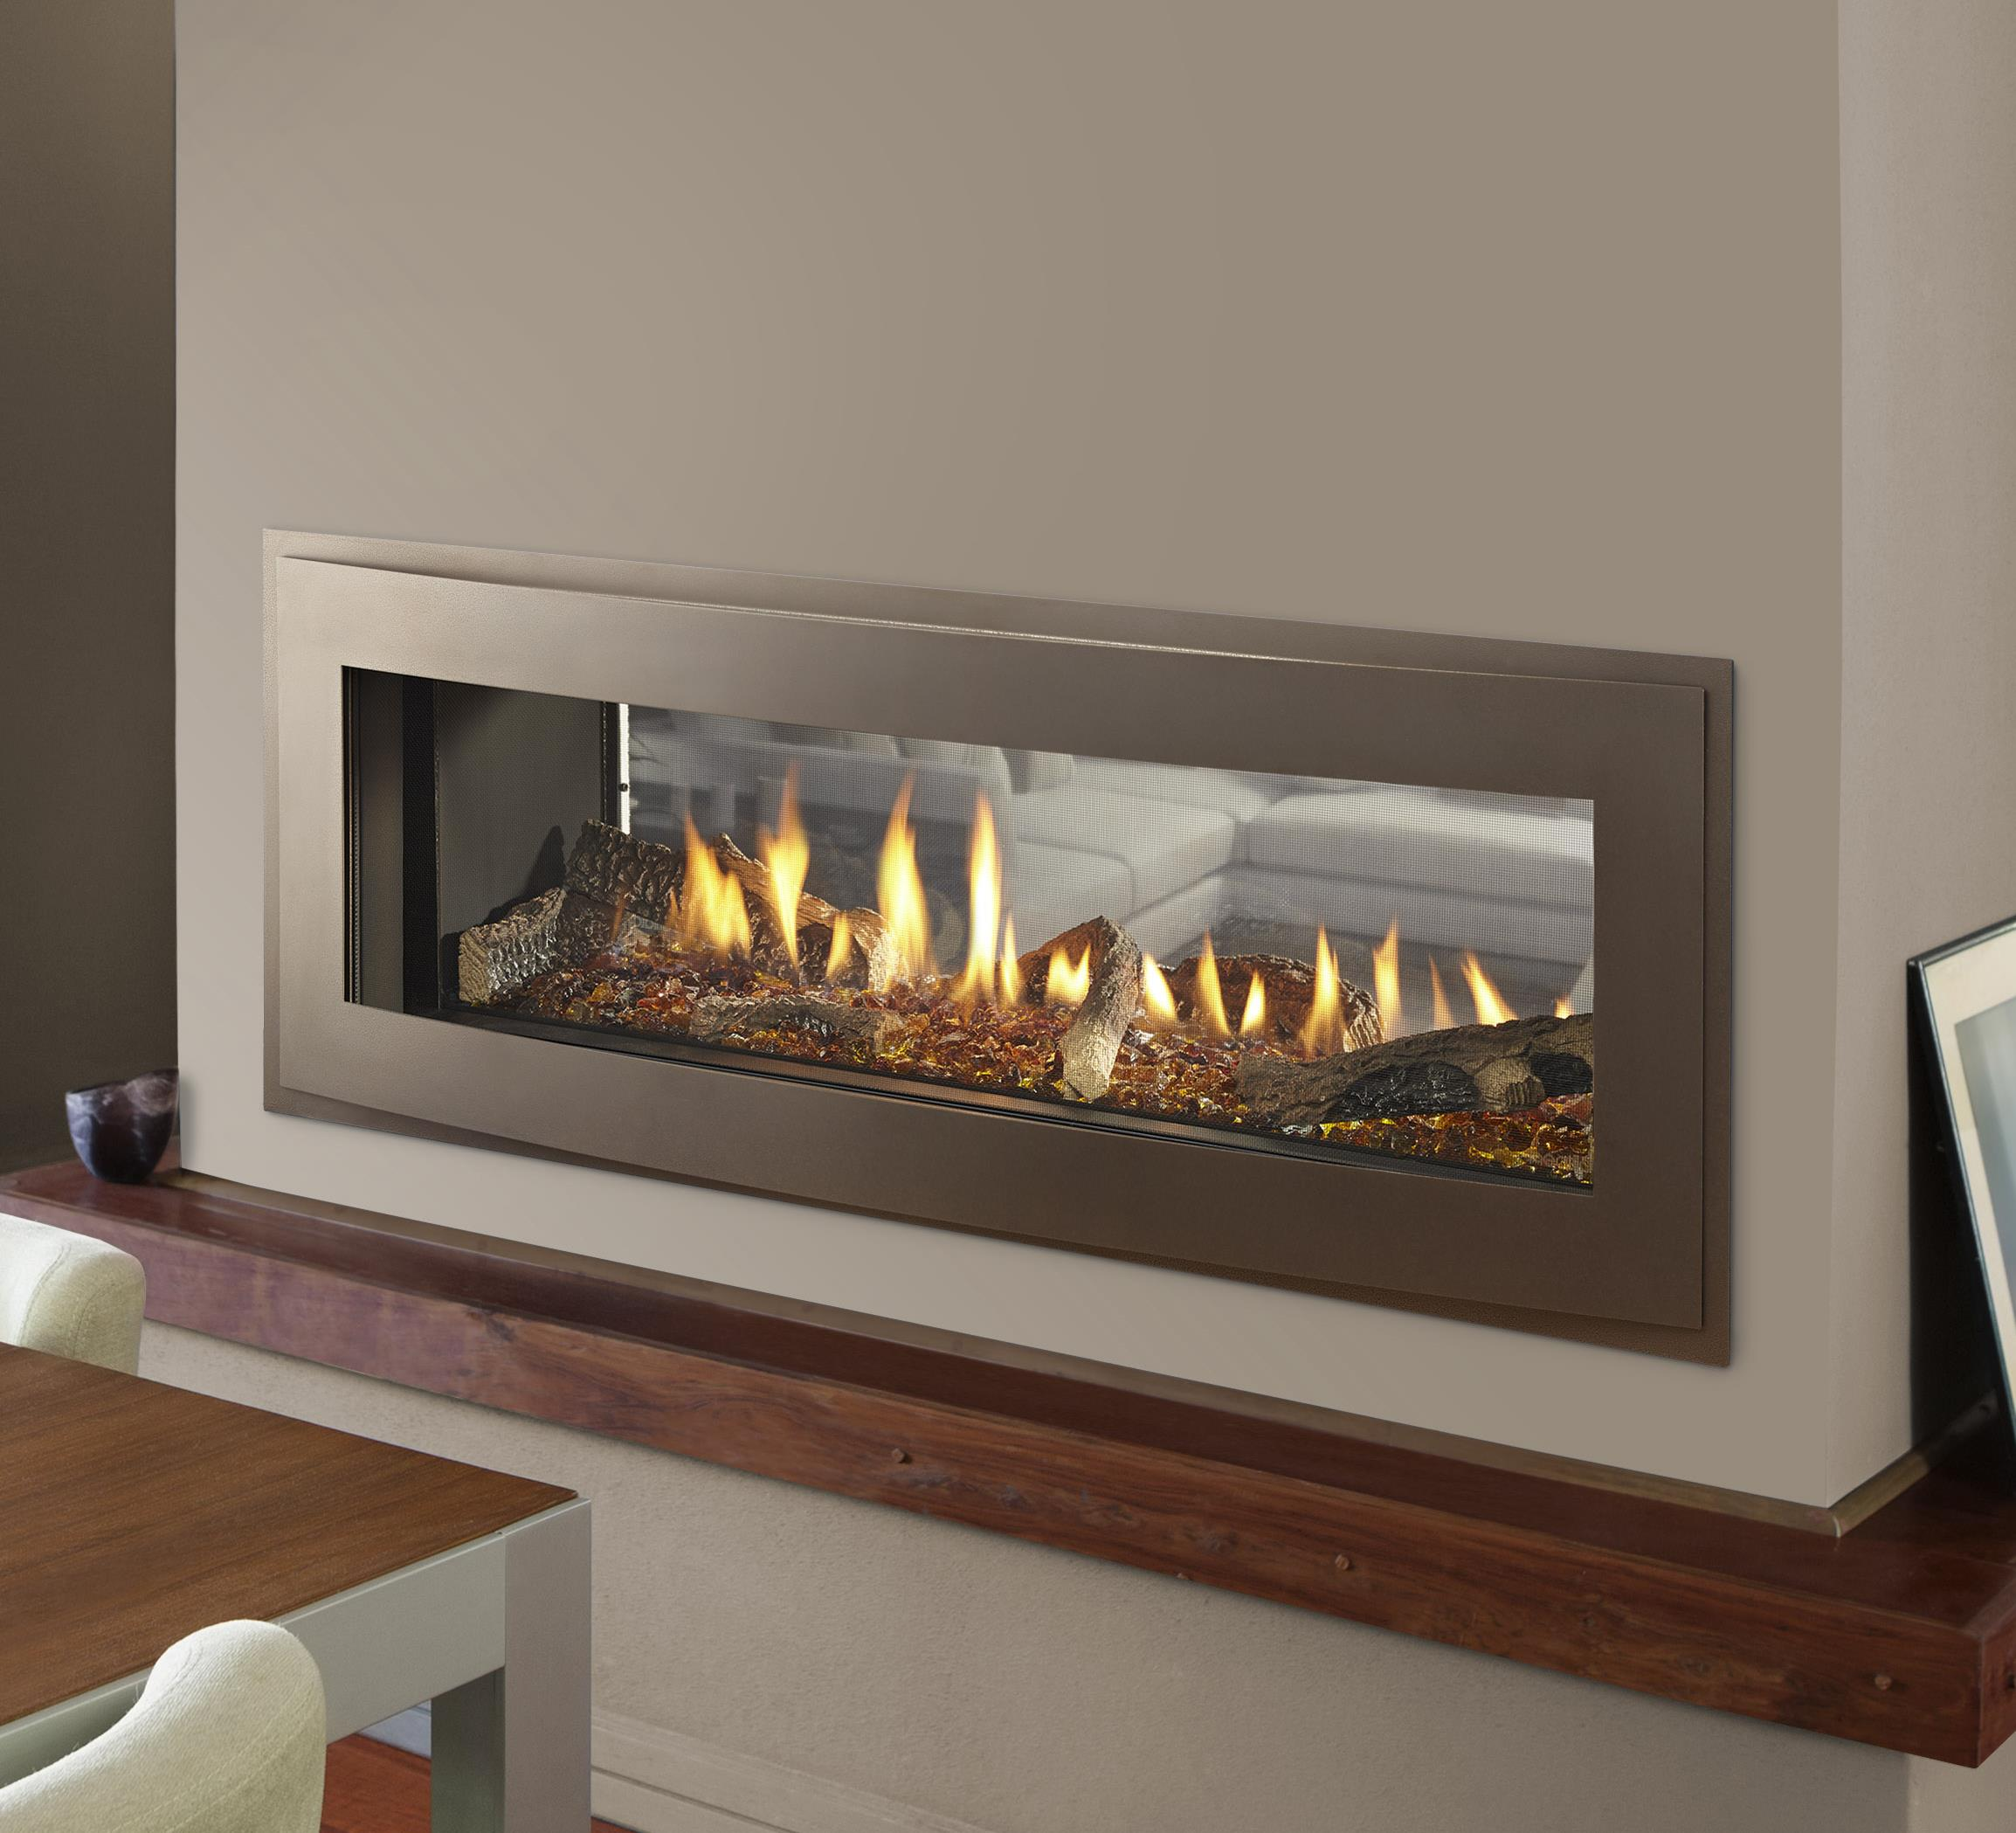 fireplace the multimedia series fireplaces releases introduces room heirloom press gas related introducing heatilator us about